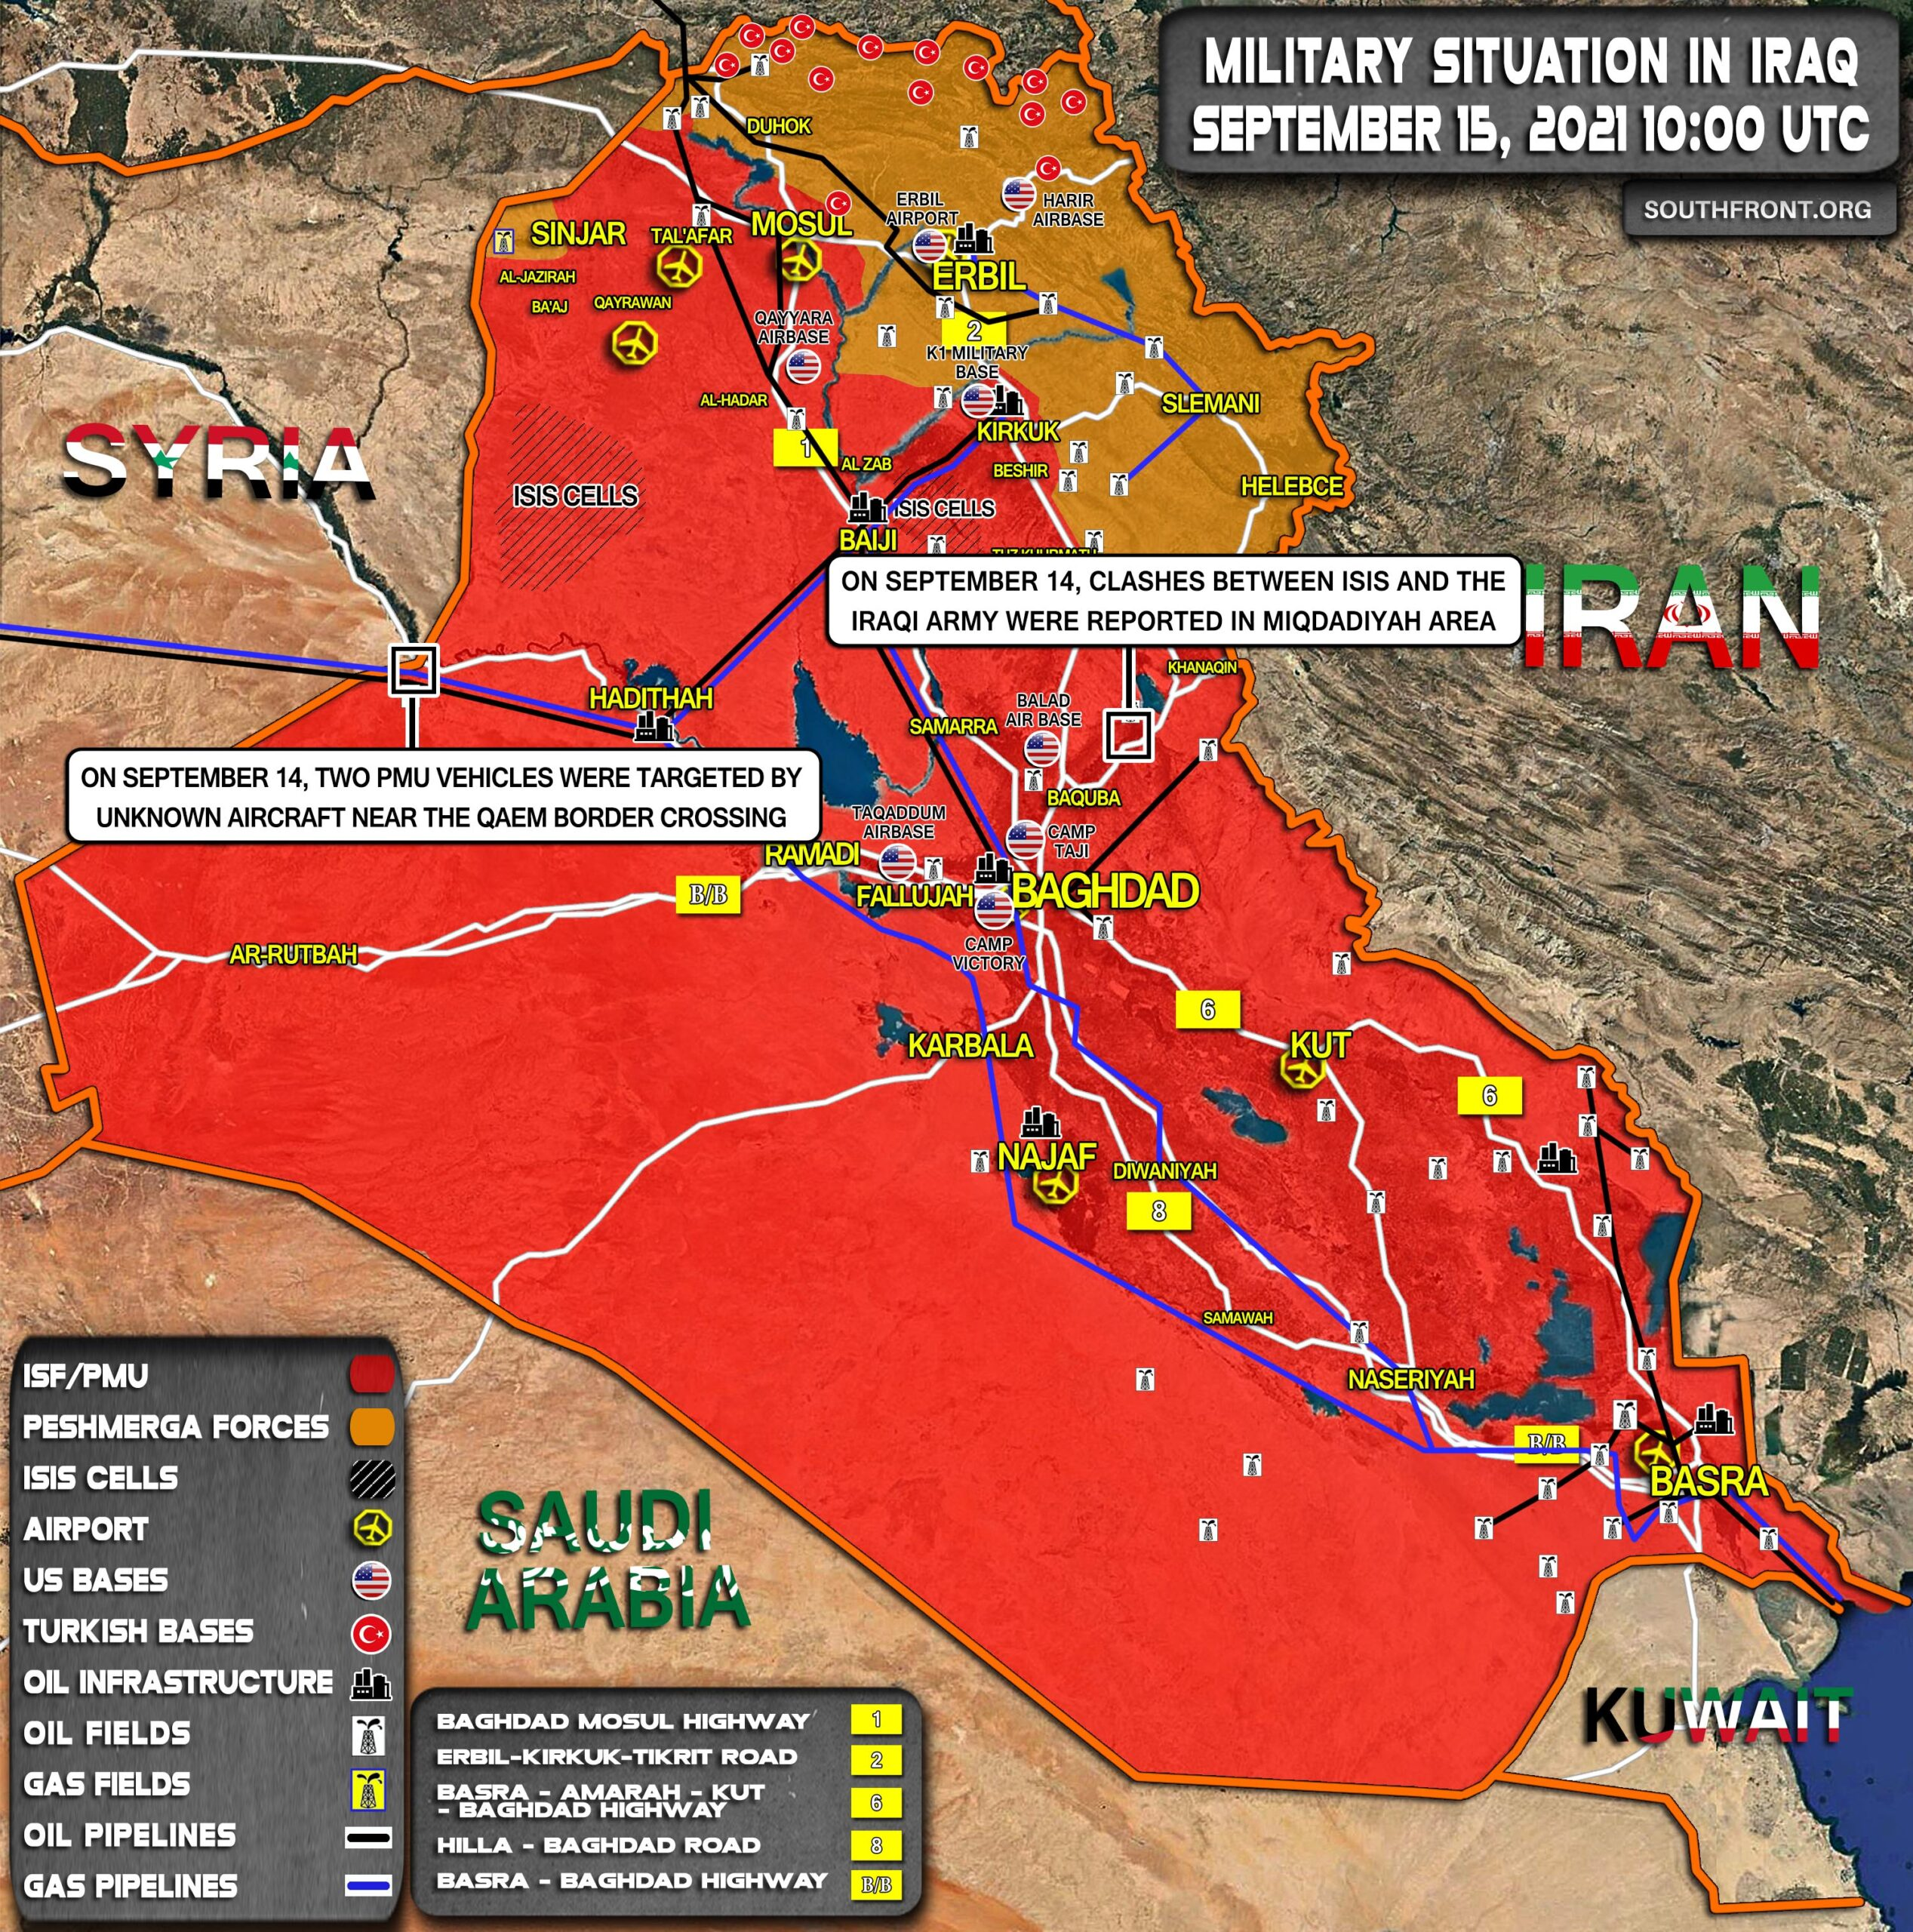 Military Situation In Iraq On September 15, 2021 (Map Update)